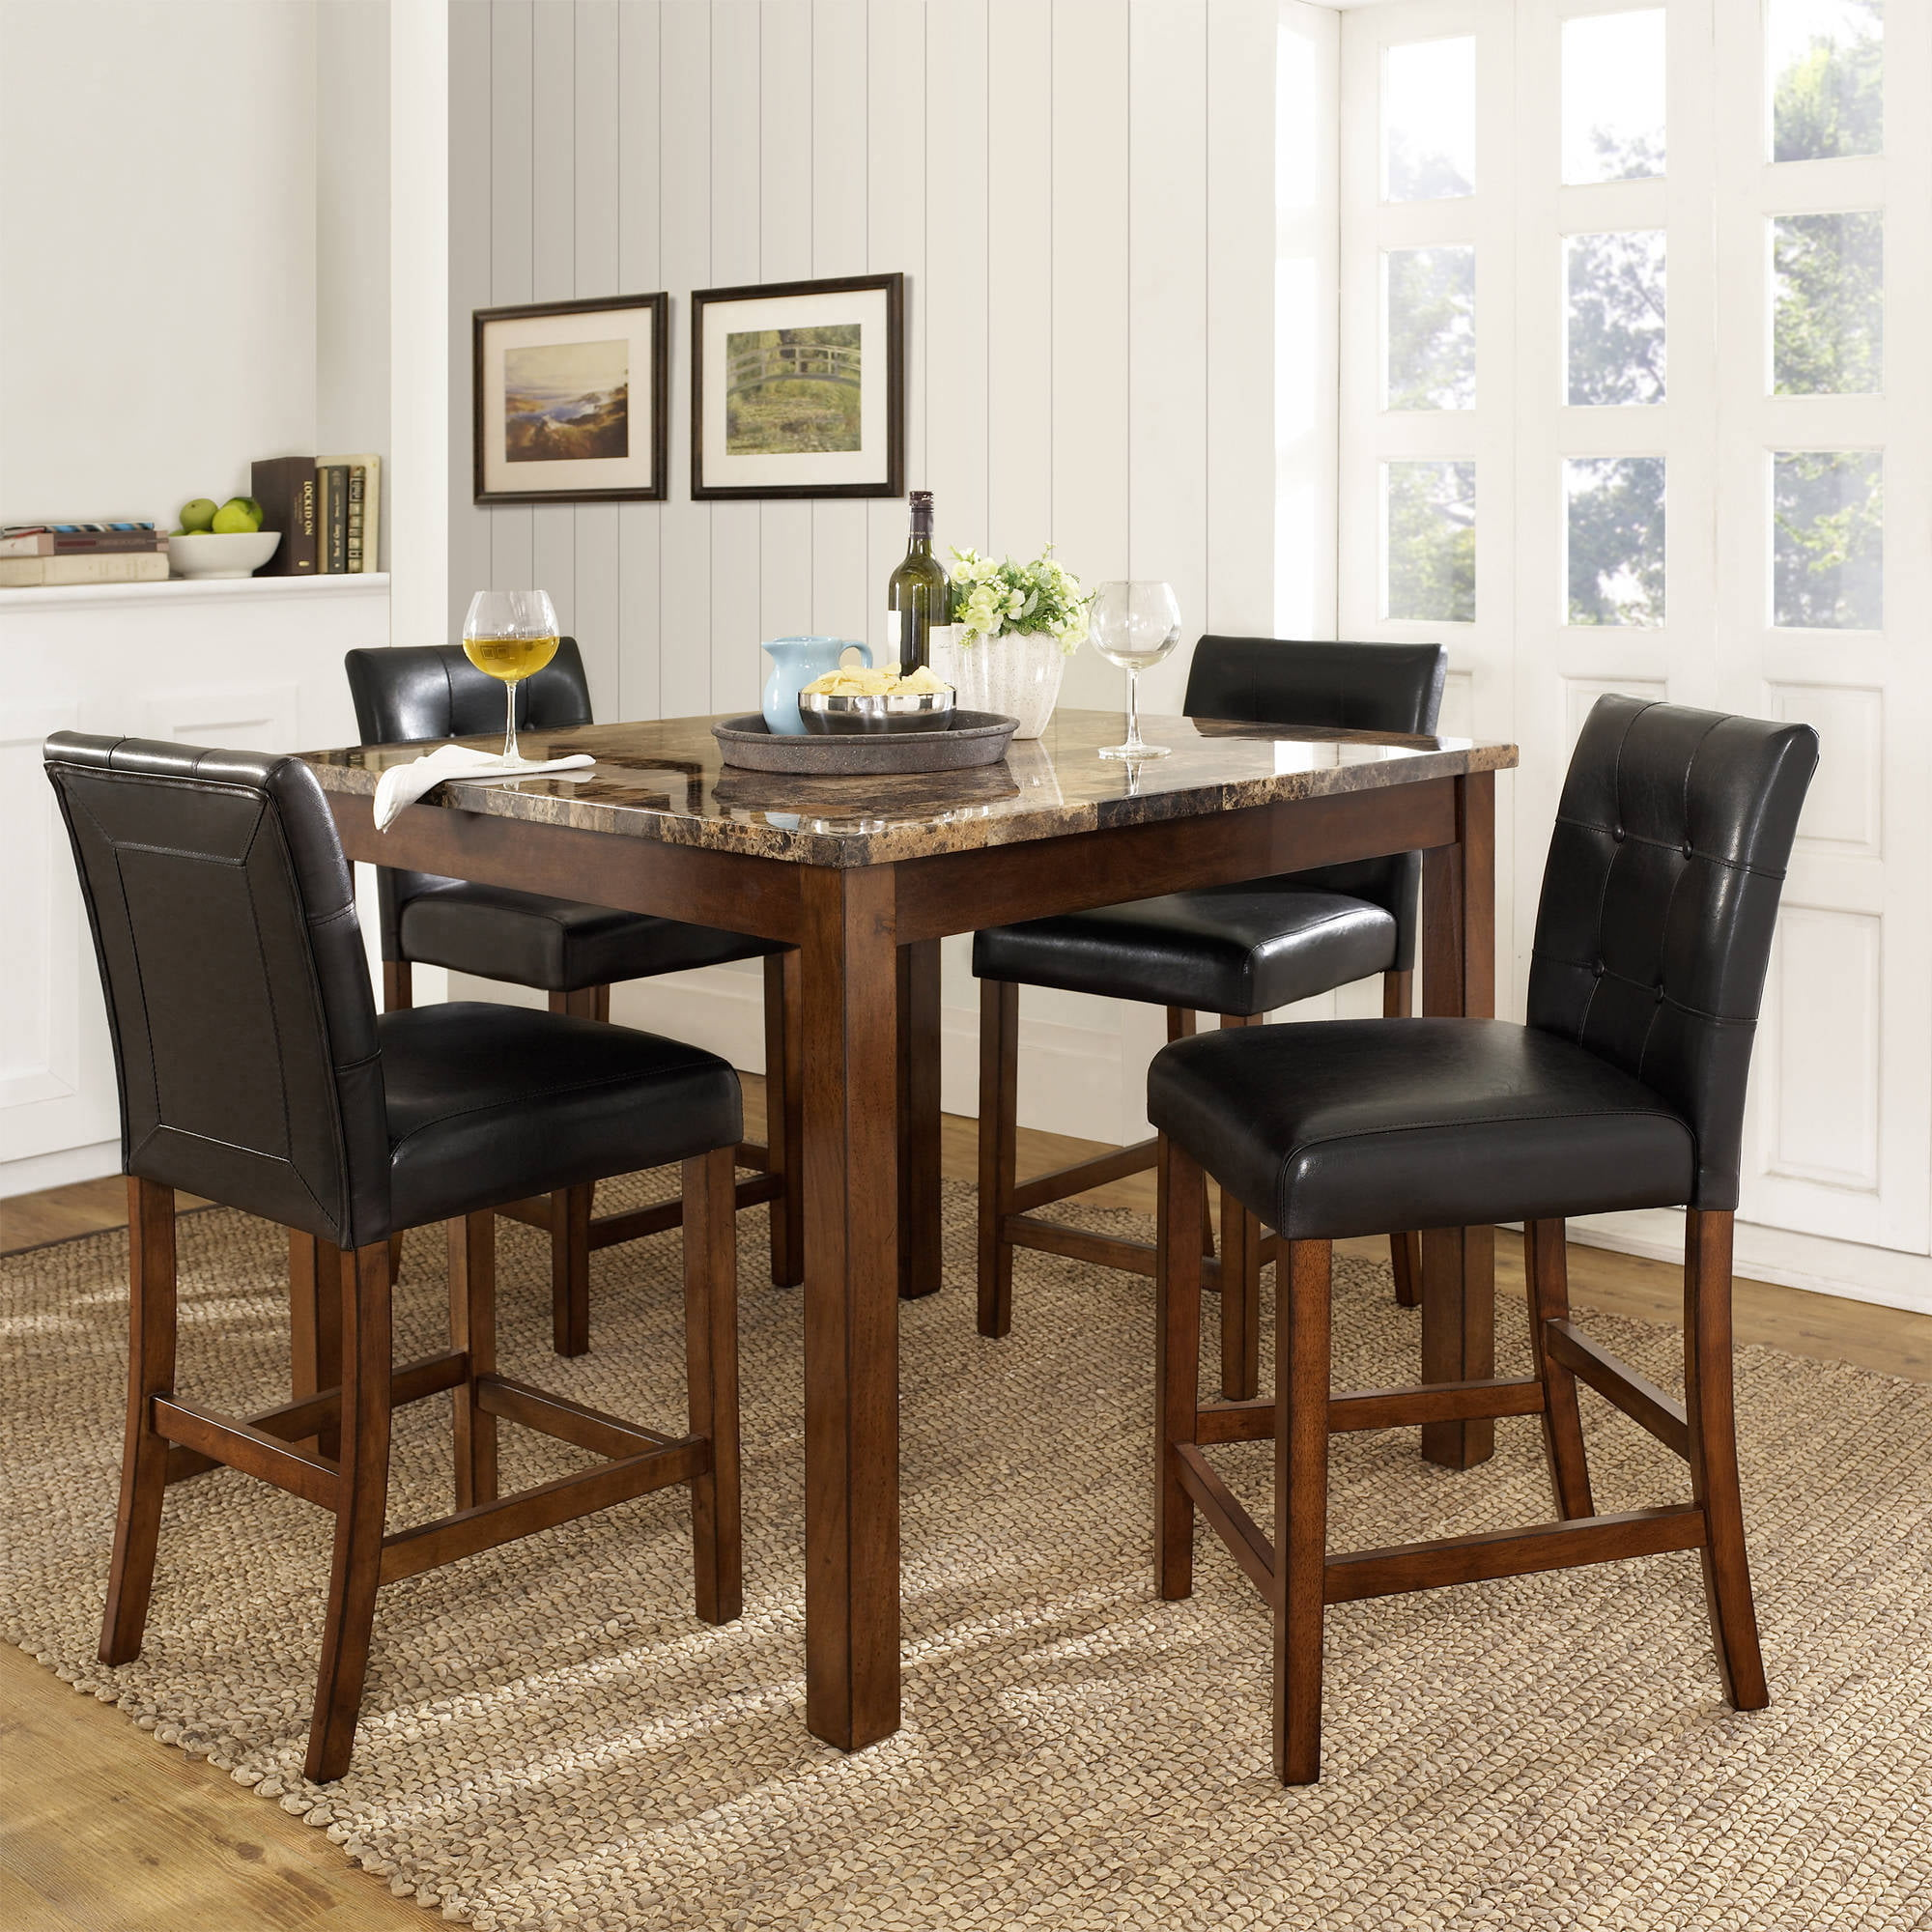 Dining Room Table Pictures Extraordinary Kitchen & Dining Furniture  Walmart Inspiration Design